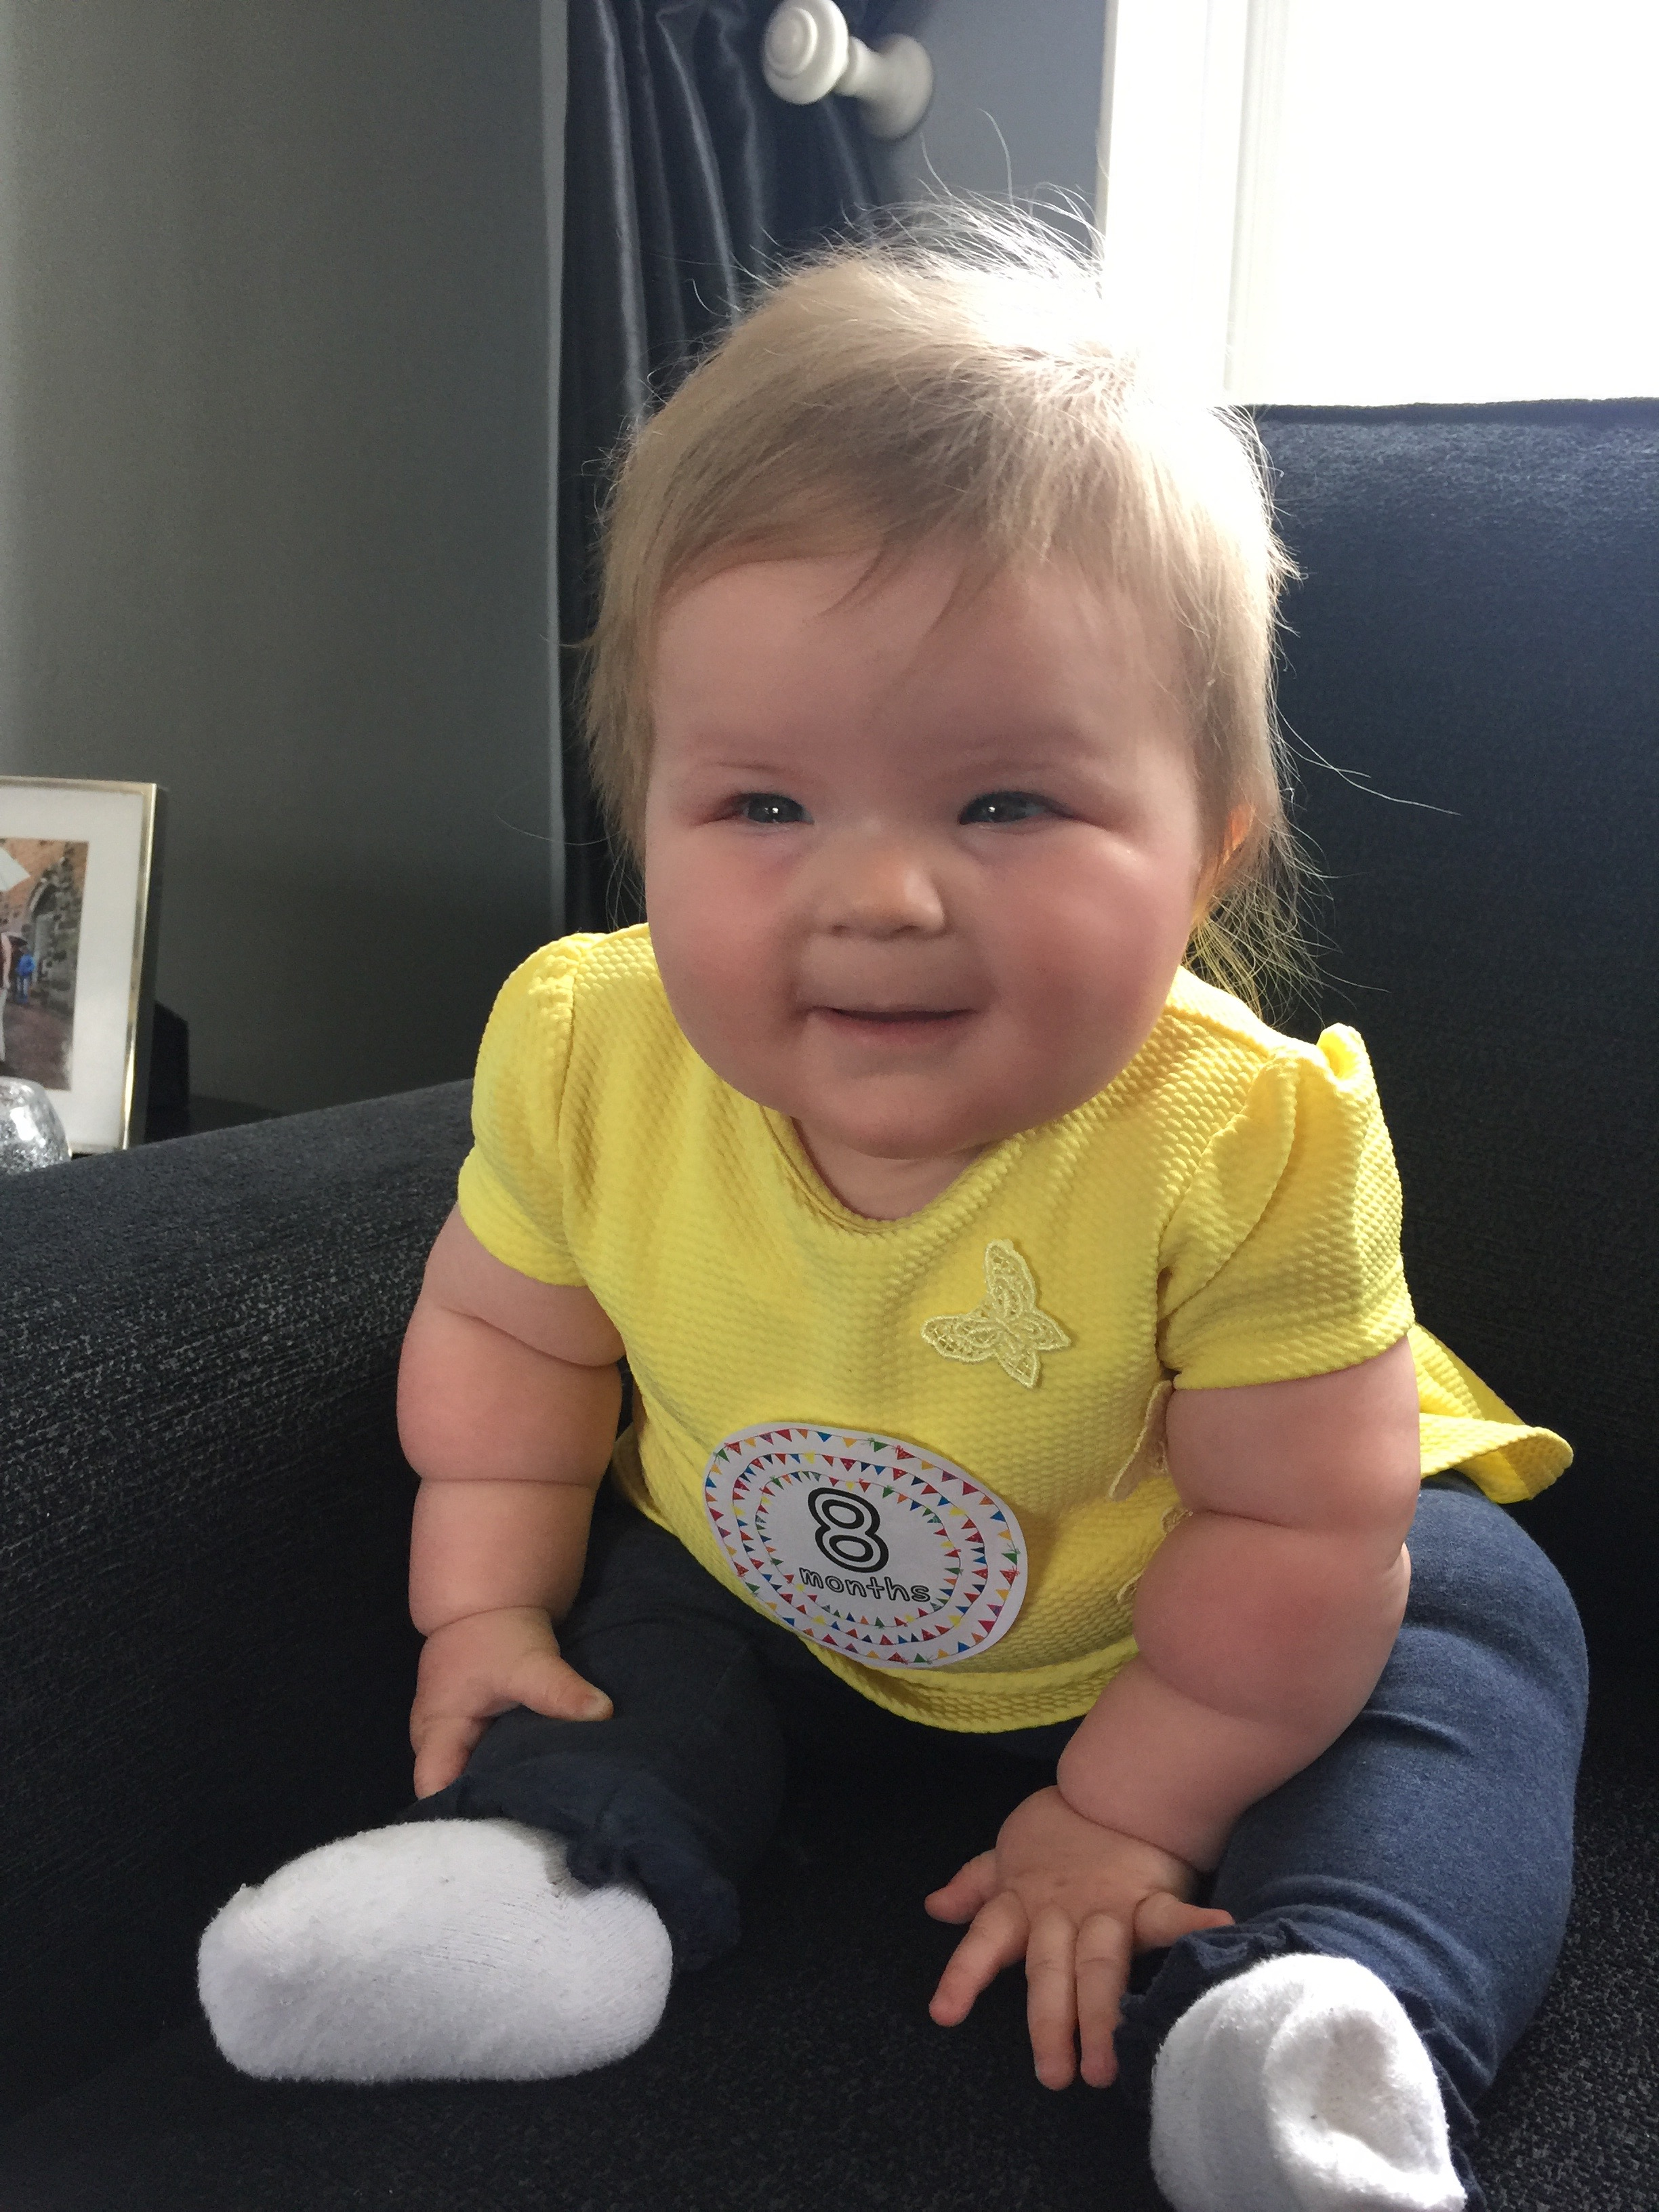 8 months old smiling